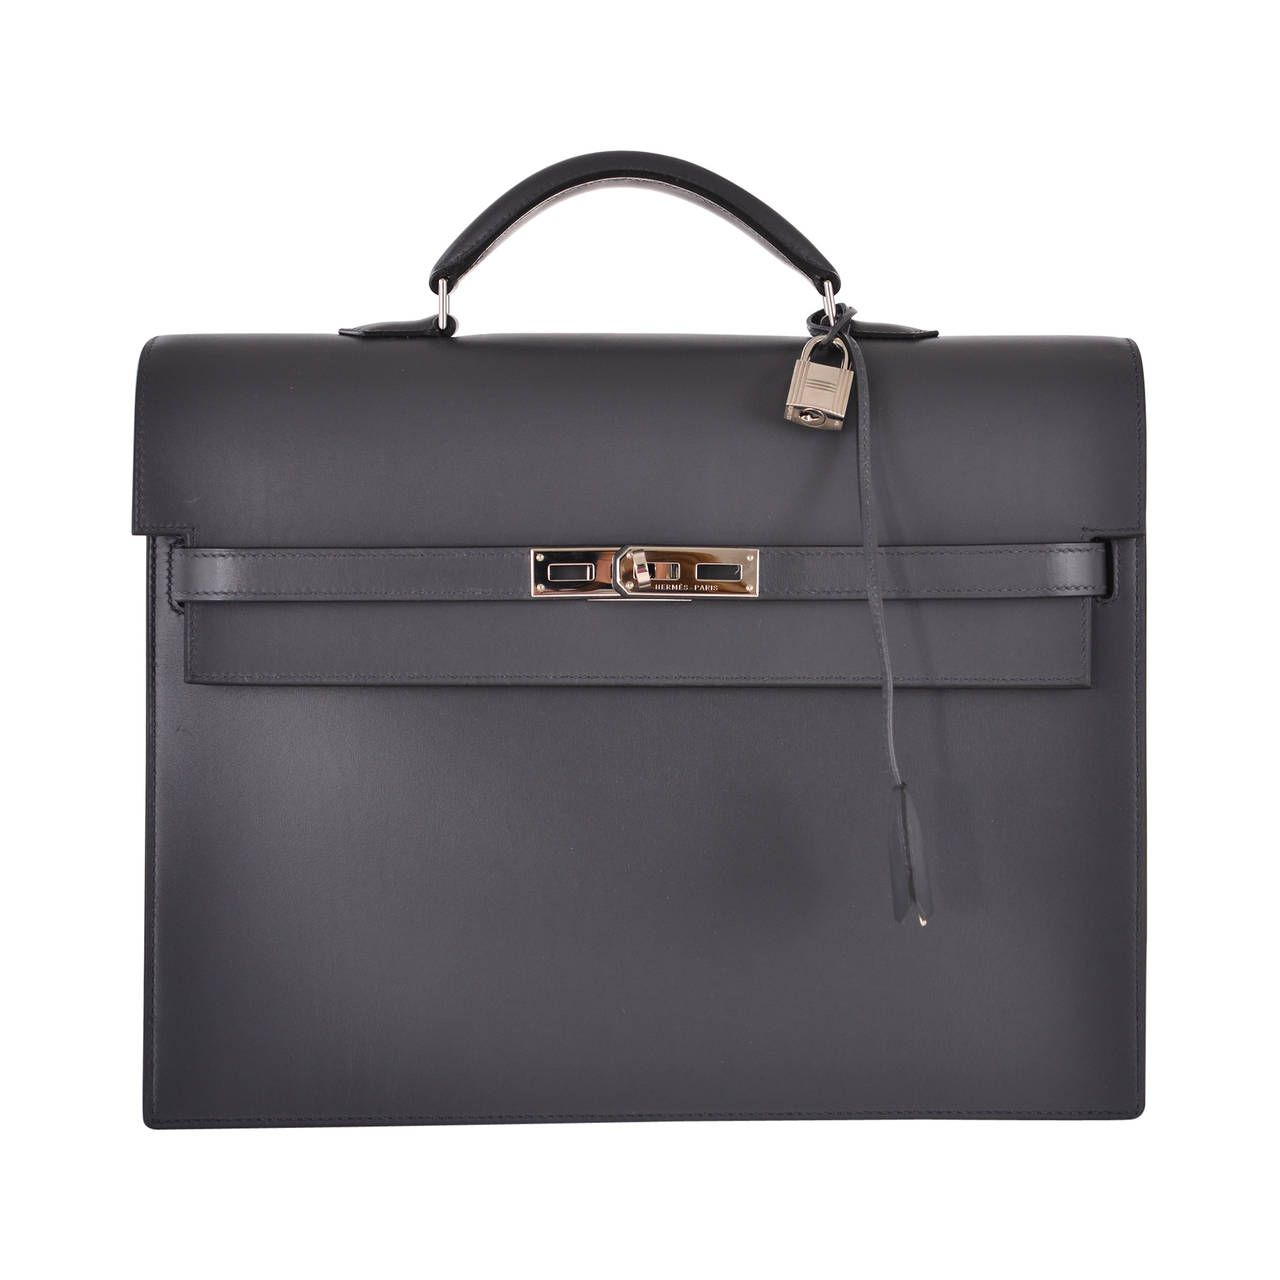 a1a0a255a4a HERMES ARDOISE CALF BOX LEATHER DEPECHES PM BAG PALLADIUM HARDWARE  JaneFinds   From a collection of